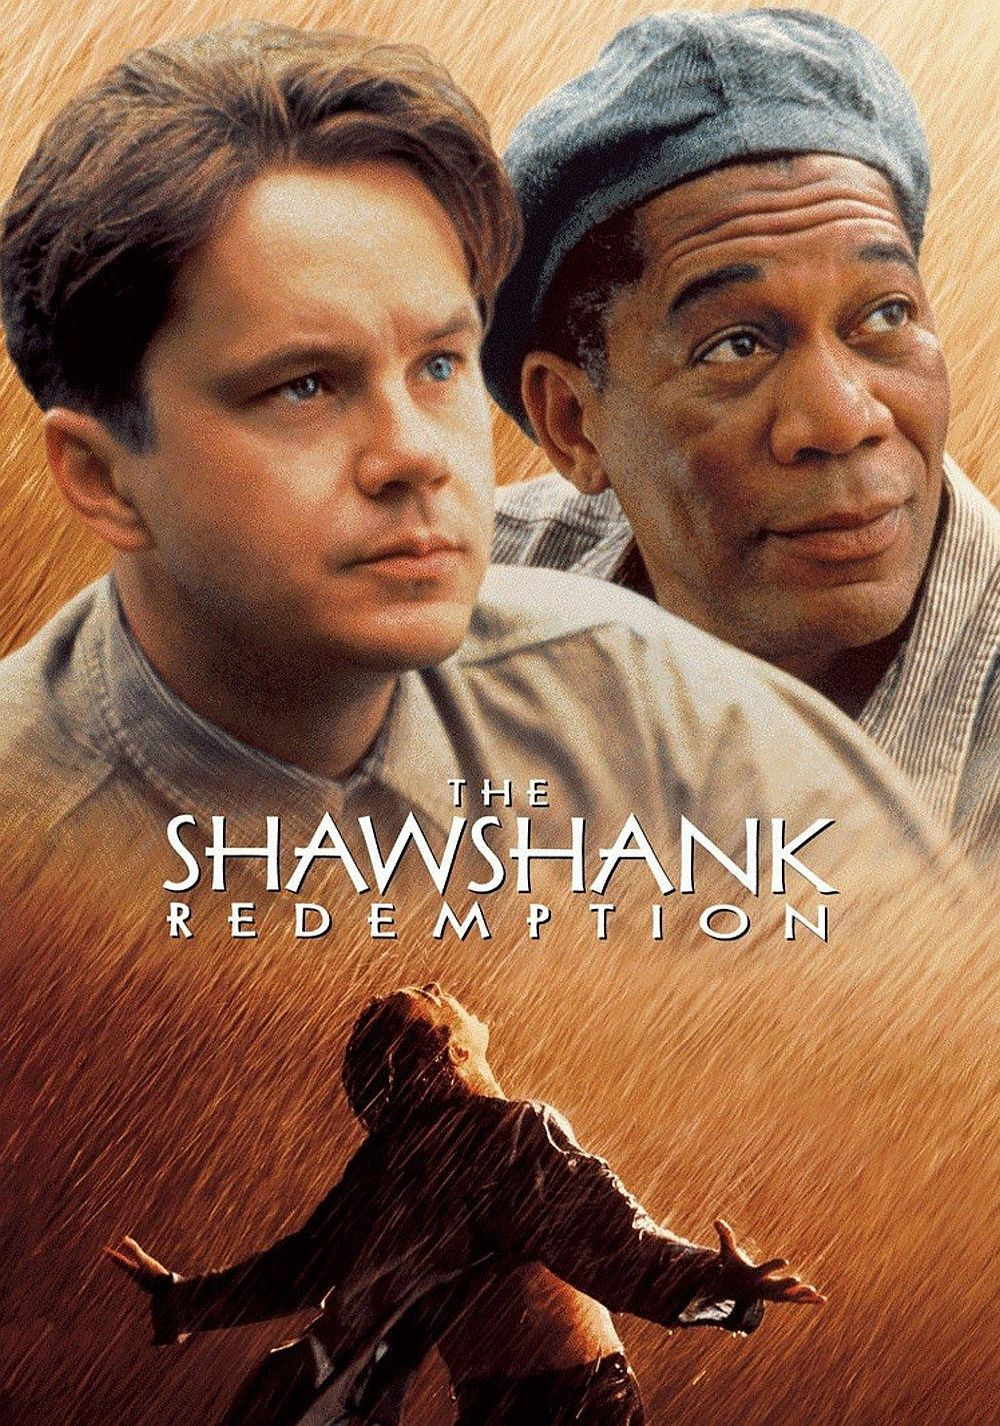 The Shawshank Redemption 1994 Tamil Dubbed Hd In 2020 The Shawshank Redemption Free Movies Online Full Movies Online